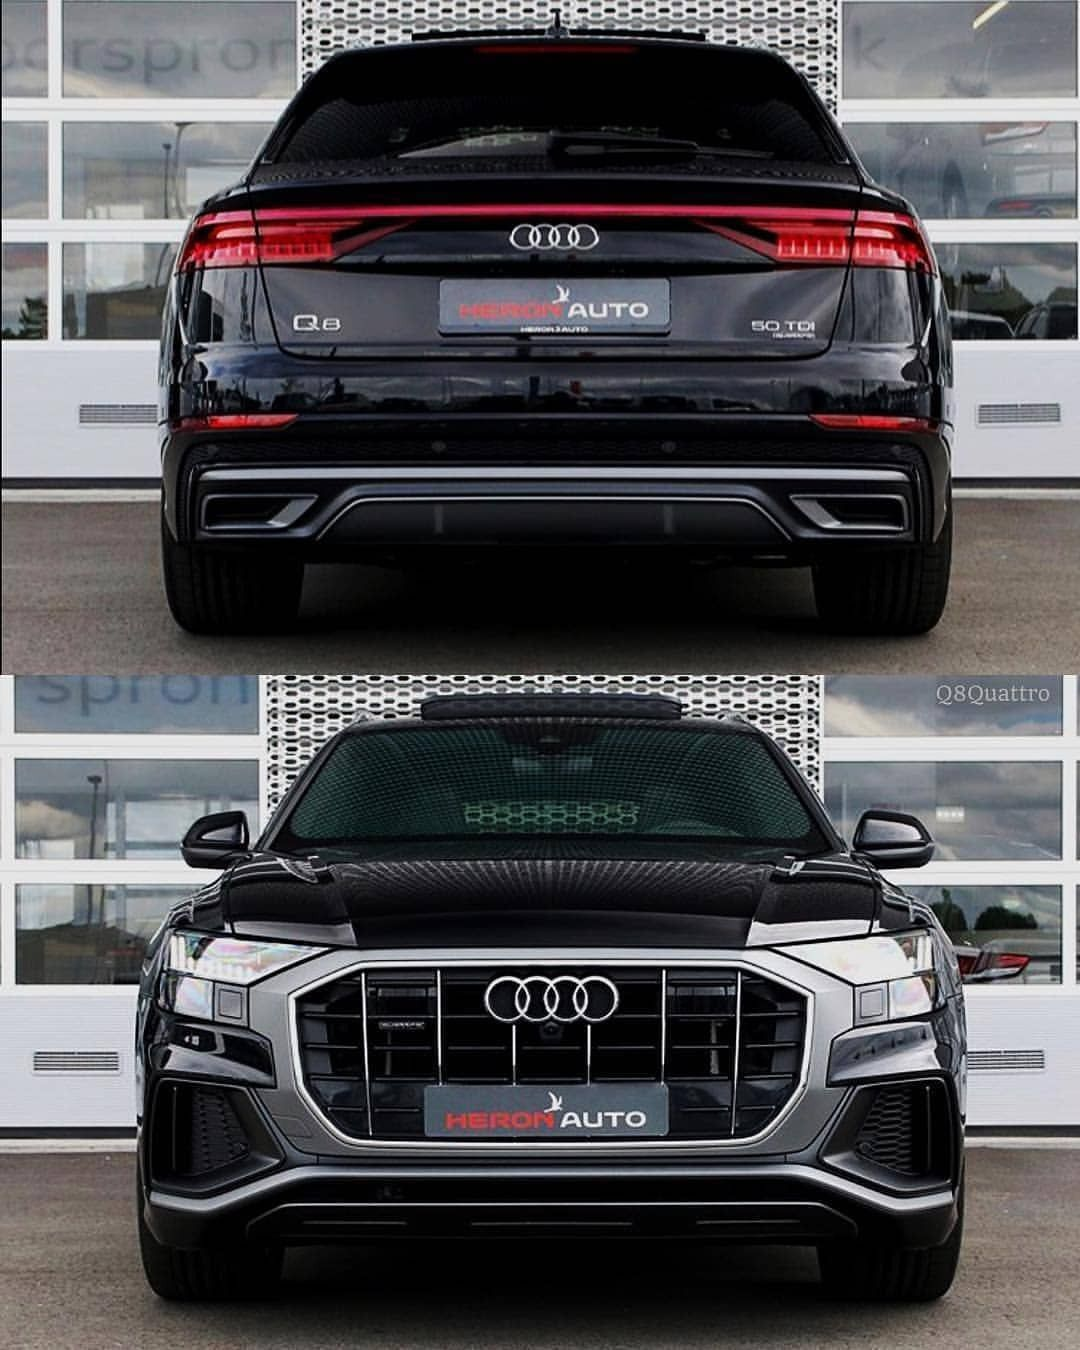 Audi Q8 With Images Audi Audi Cars Suv Cars